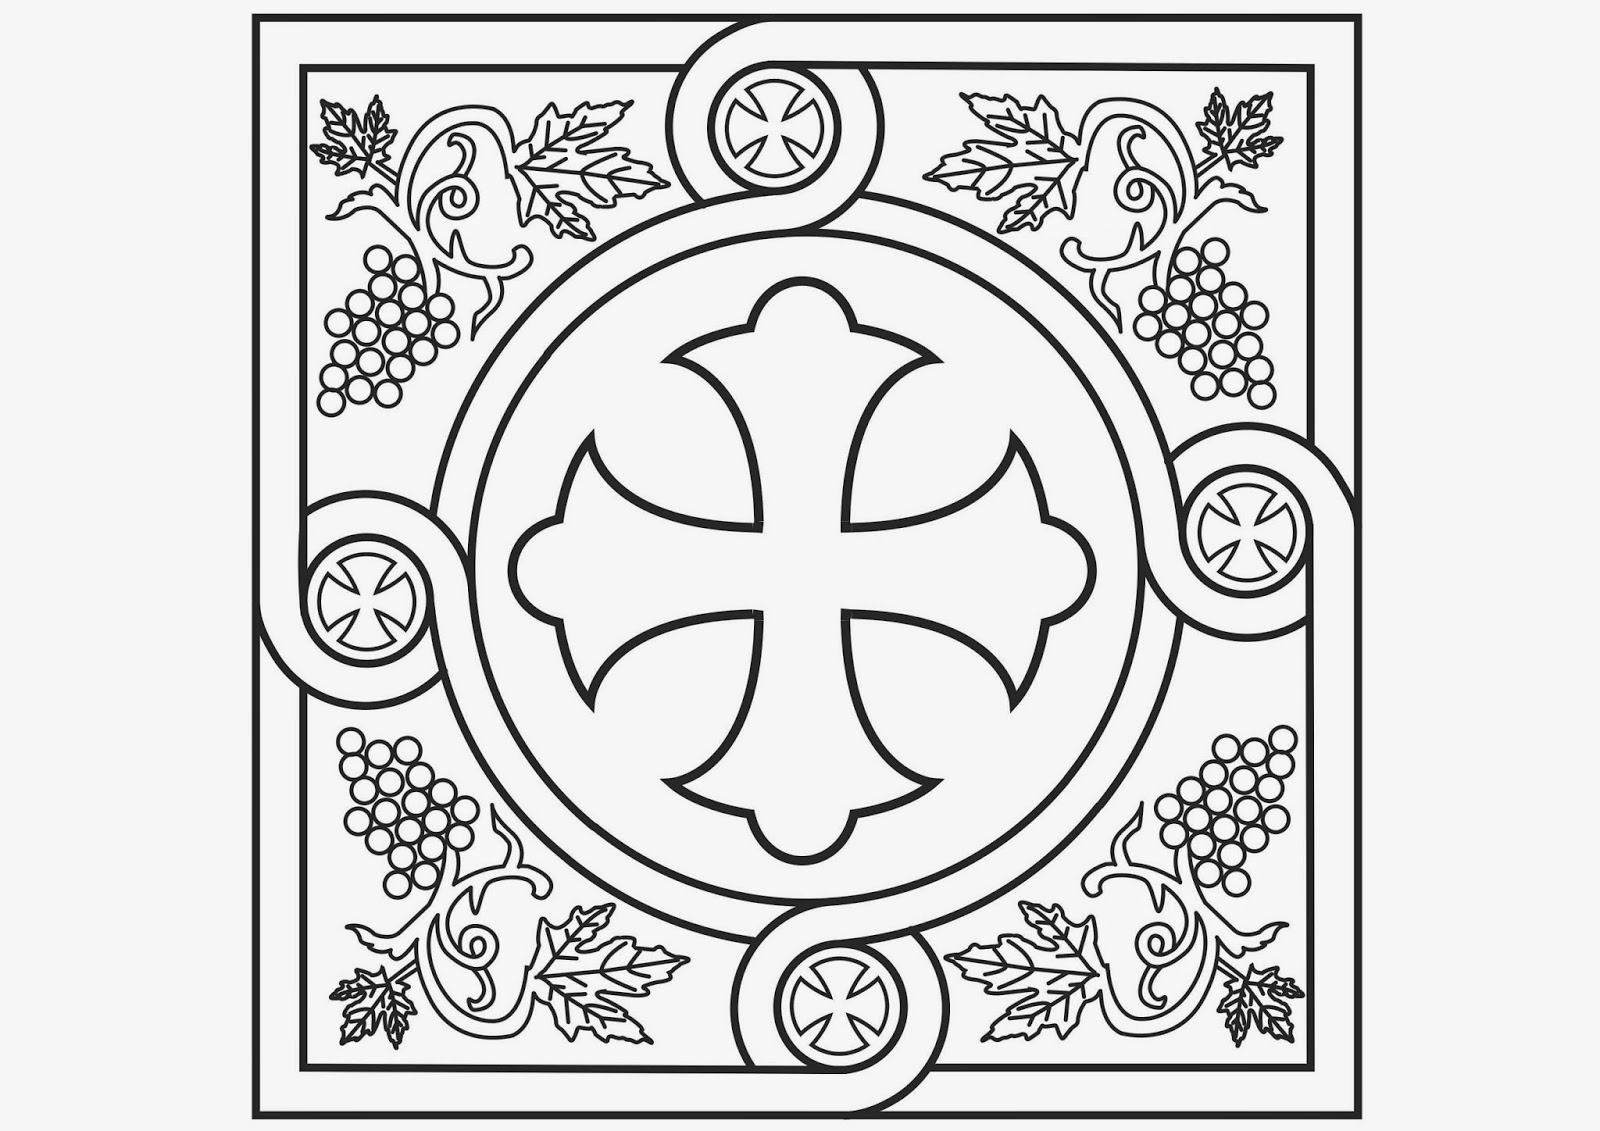 printable orthodox icon coloring pages   Orthodox Christian Education